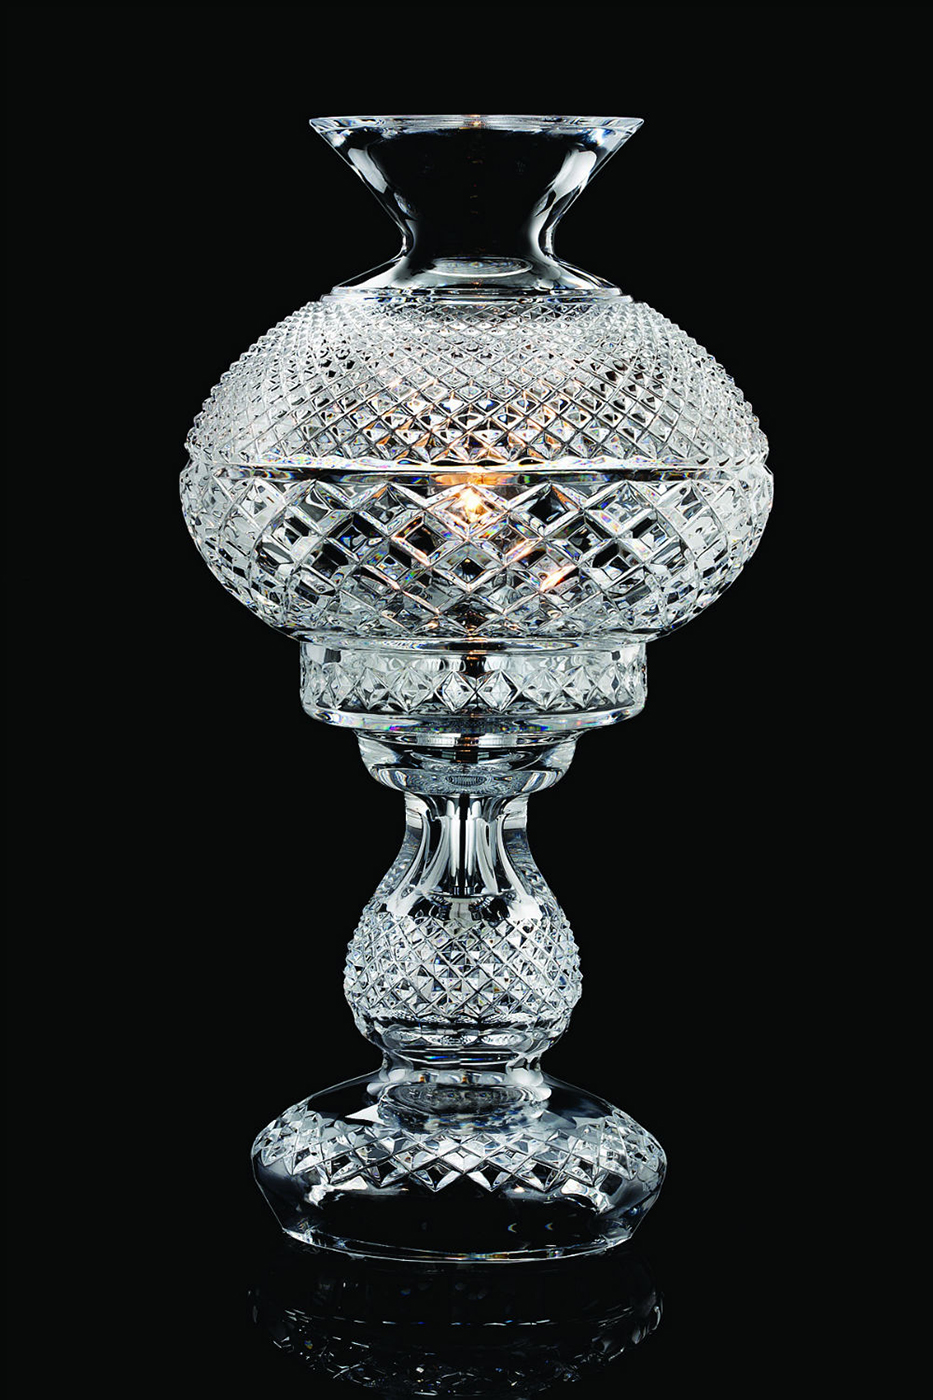 Inishmaan 14 Quot All Crystal Lamp By Waterford